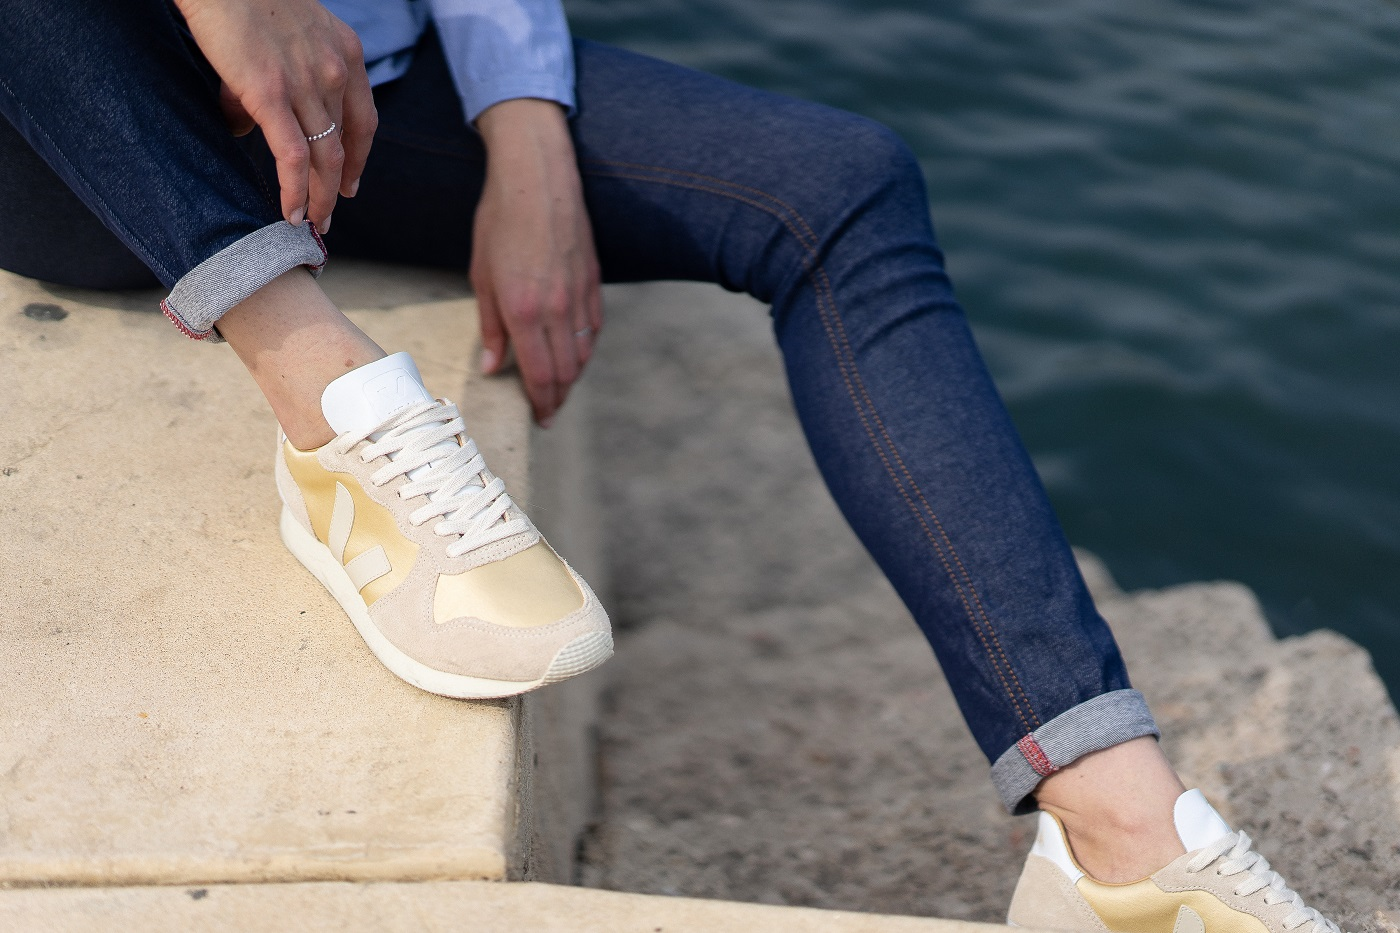 jean-brut-1083-veja-ecoresponsable-ecofriendly-mesideesnaturelles-slowfashion